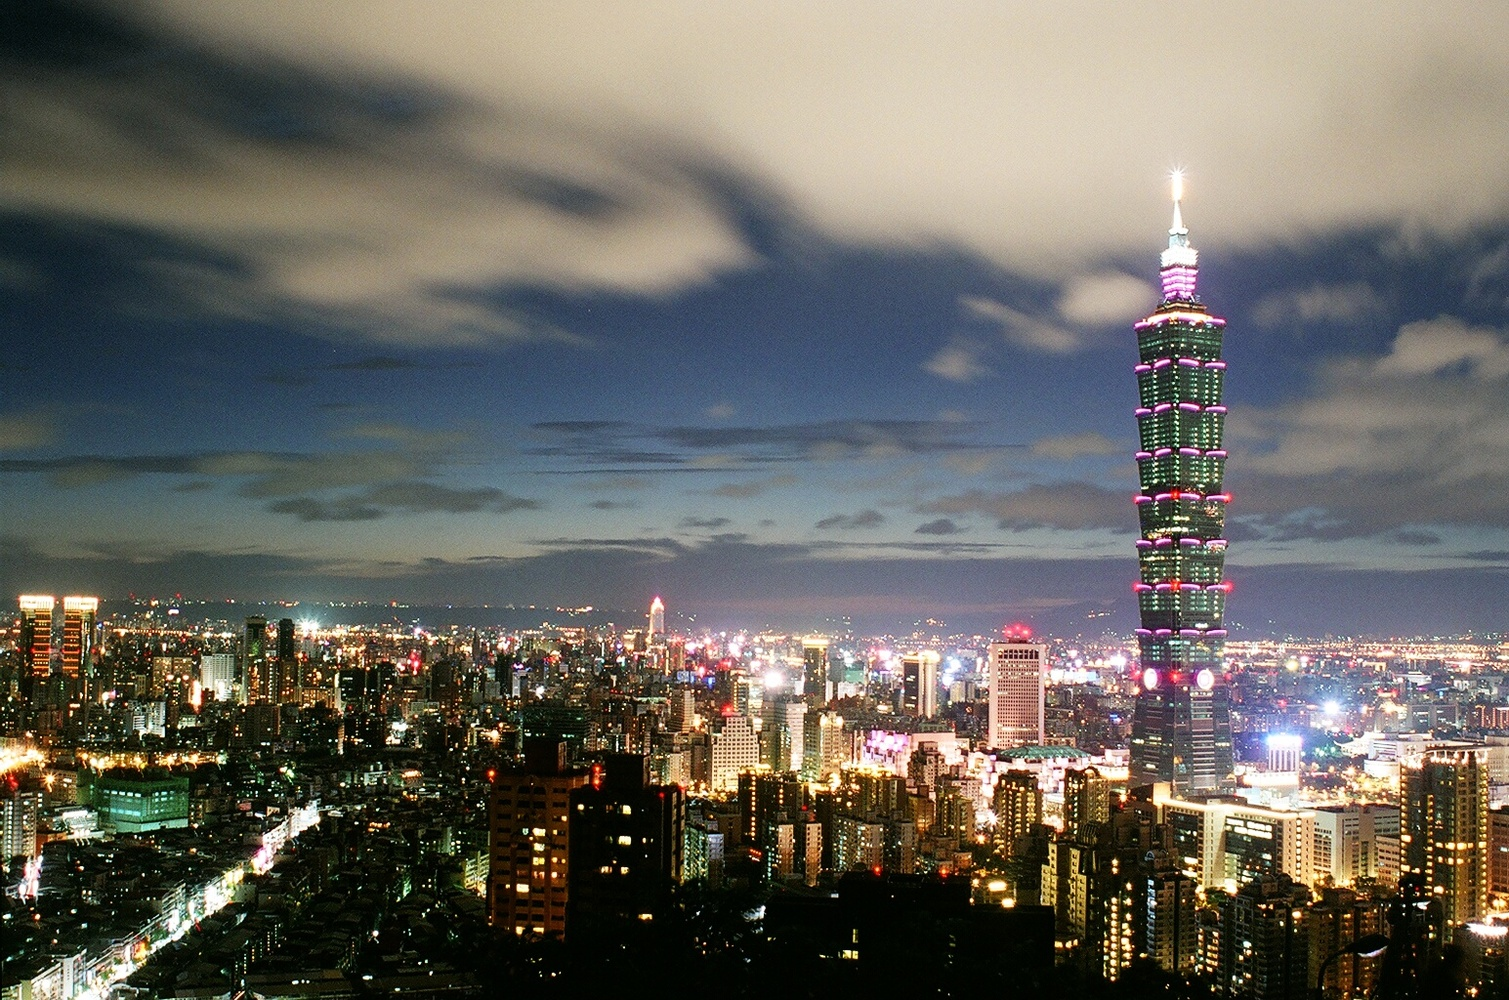 These Are the World's 25 Tallest Buildings,TAIPEI 101. Image © Chris [Flickr] under license CC BY 2.0